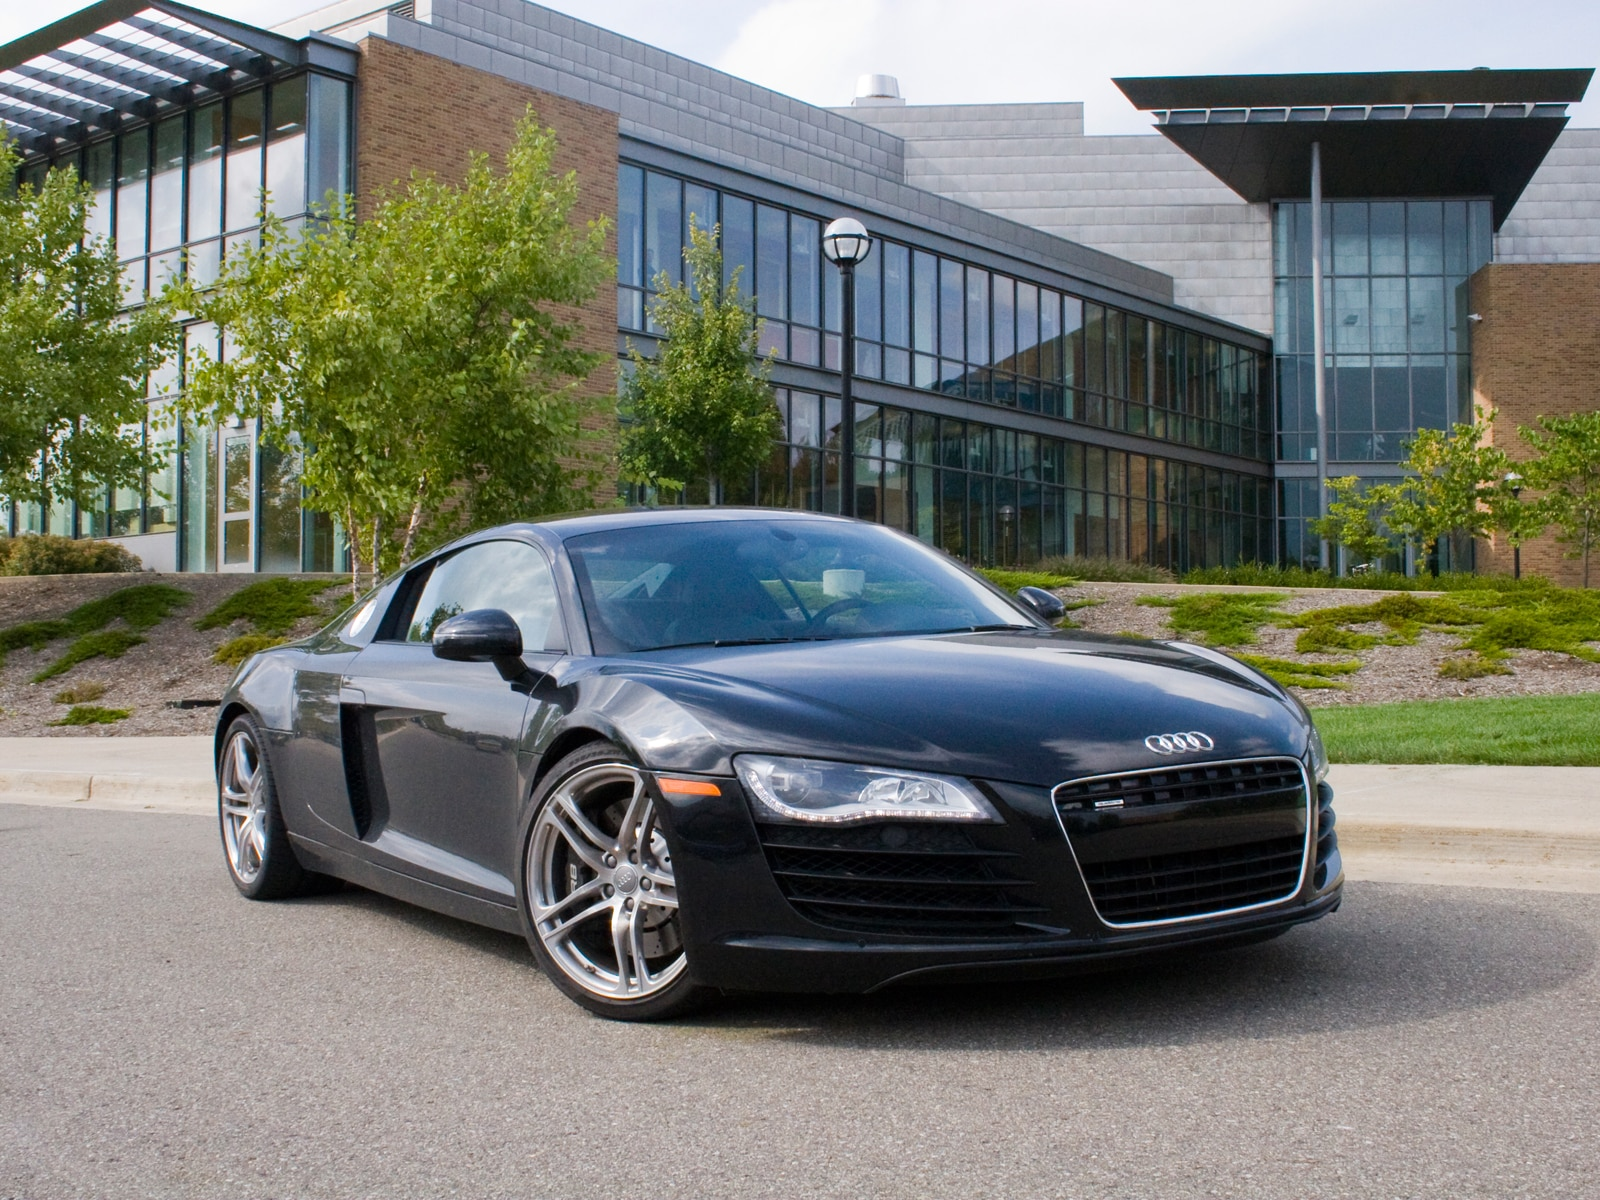 0910 04 Z 2009 Audi R8 R Tronic Front Three Quarter View